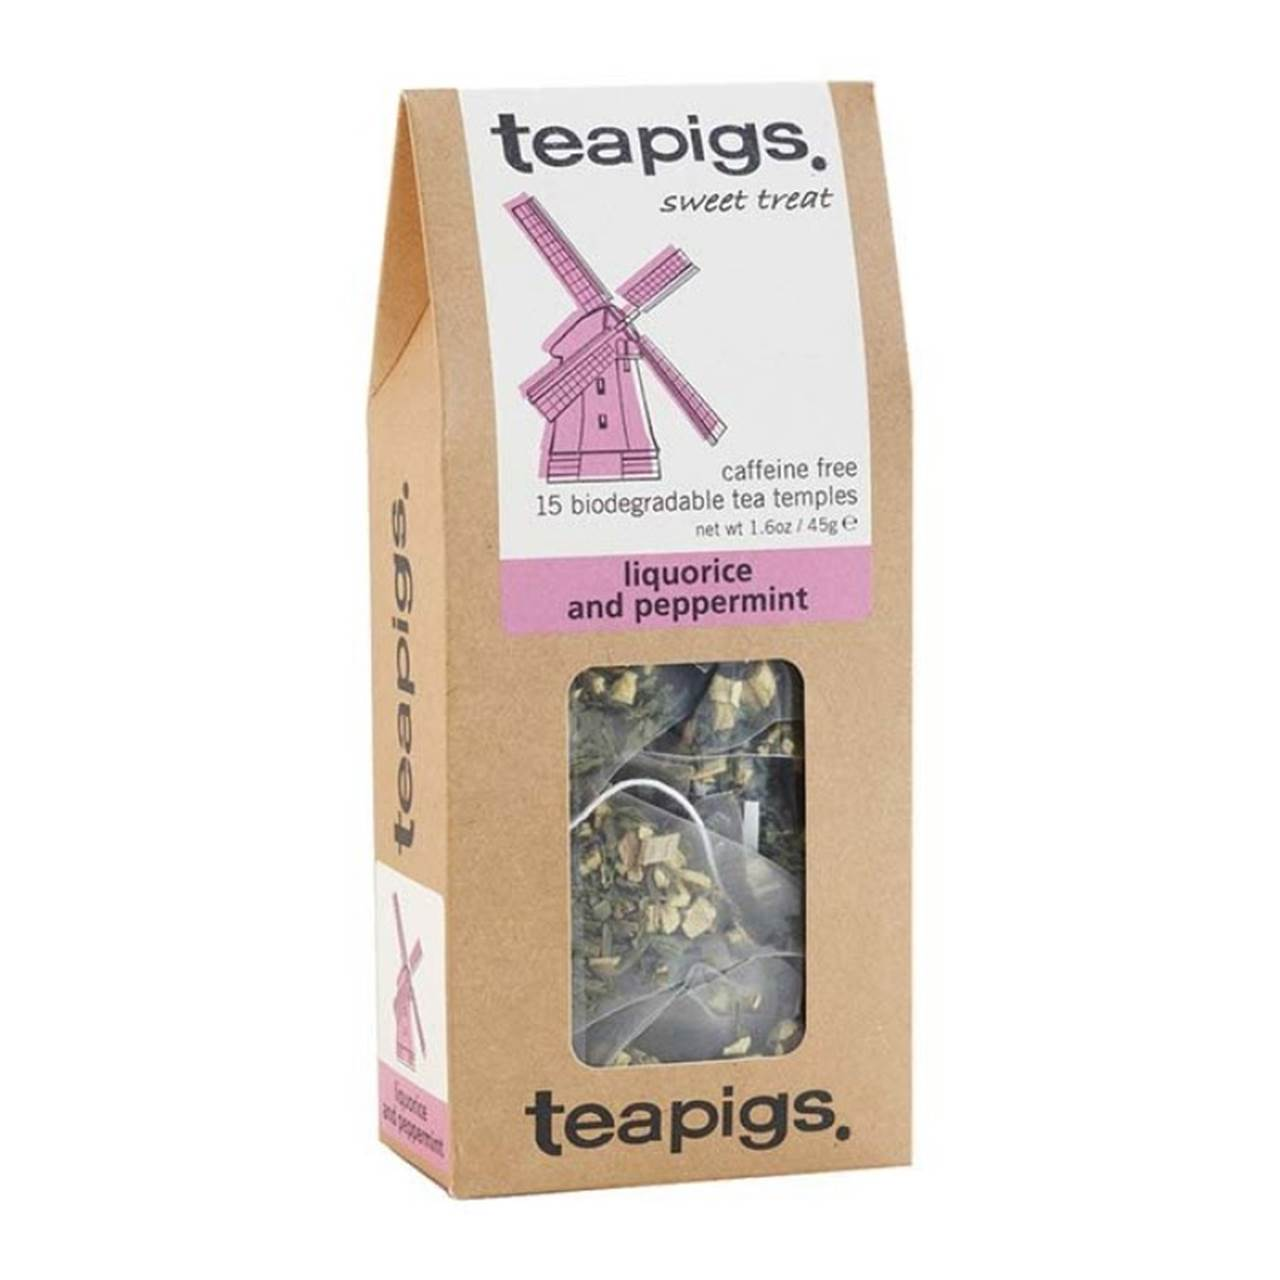 Liquorice and peppermint - Teapigs